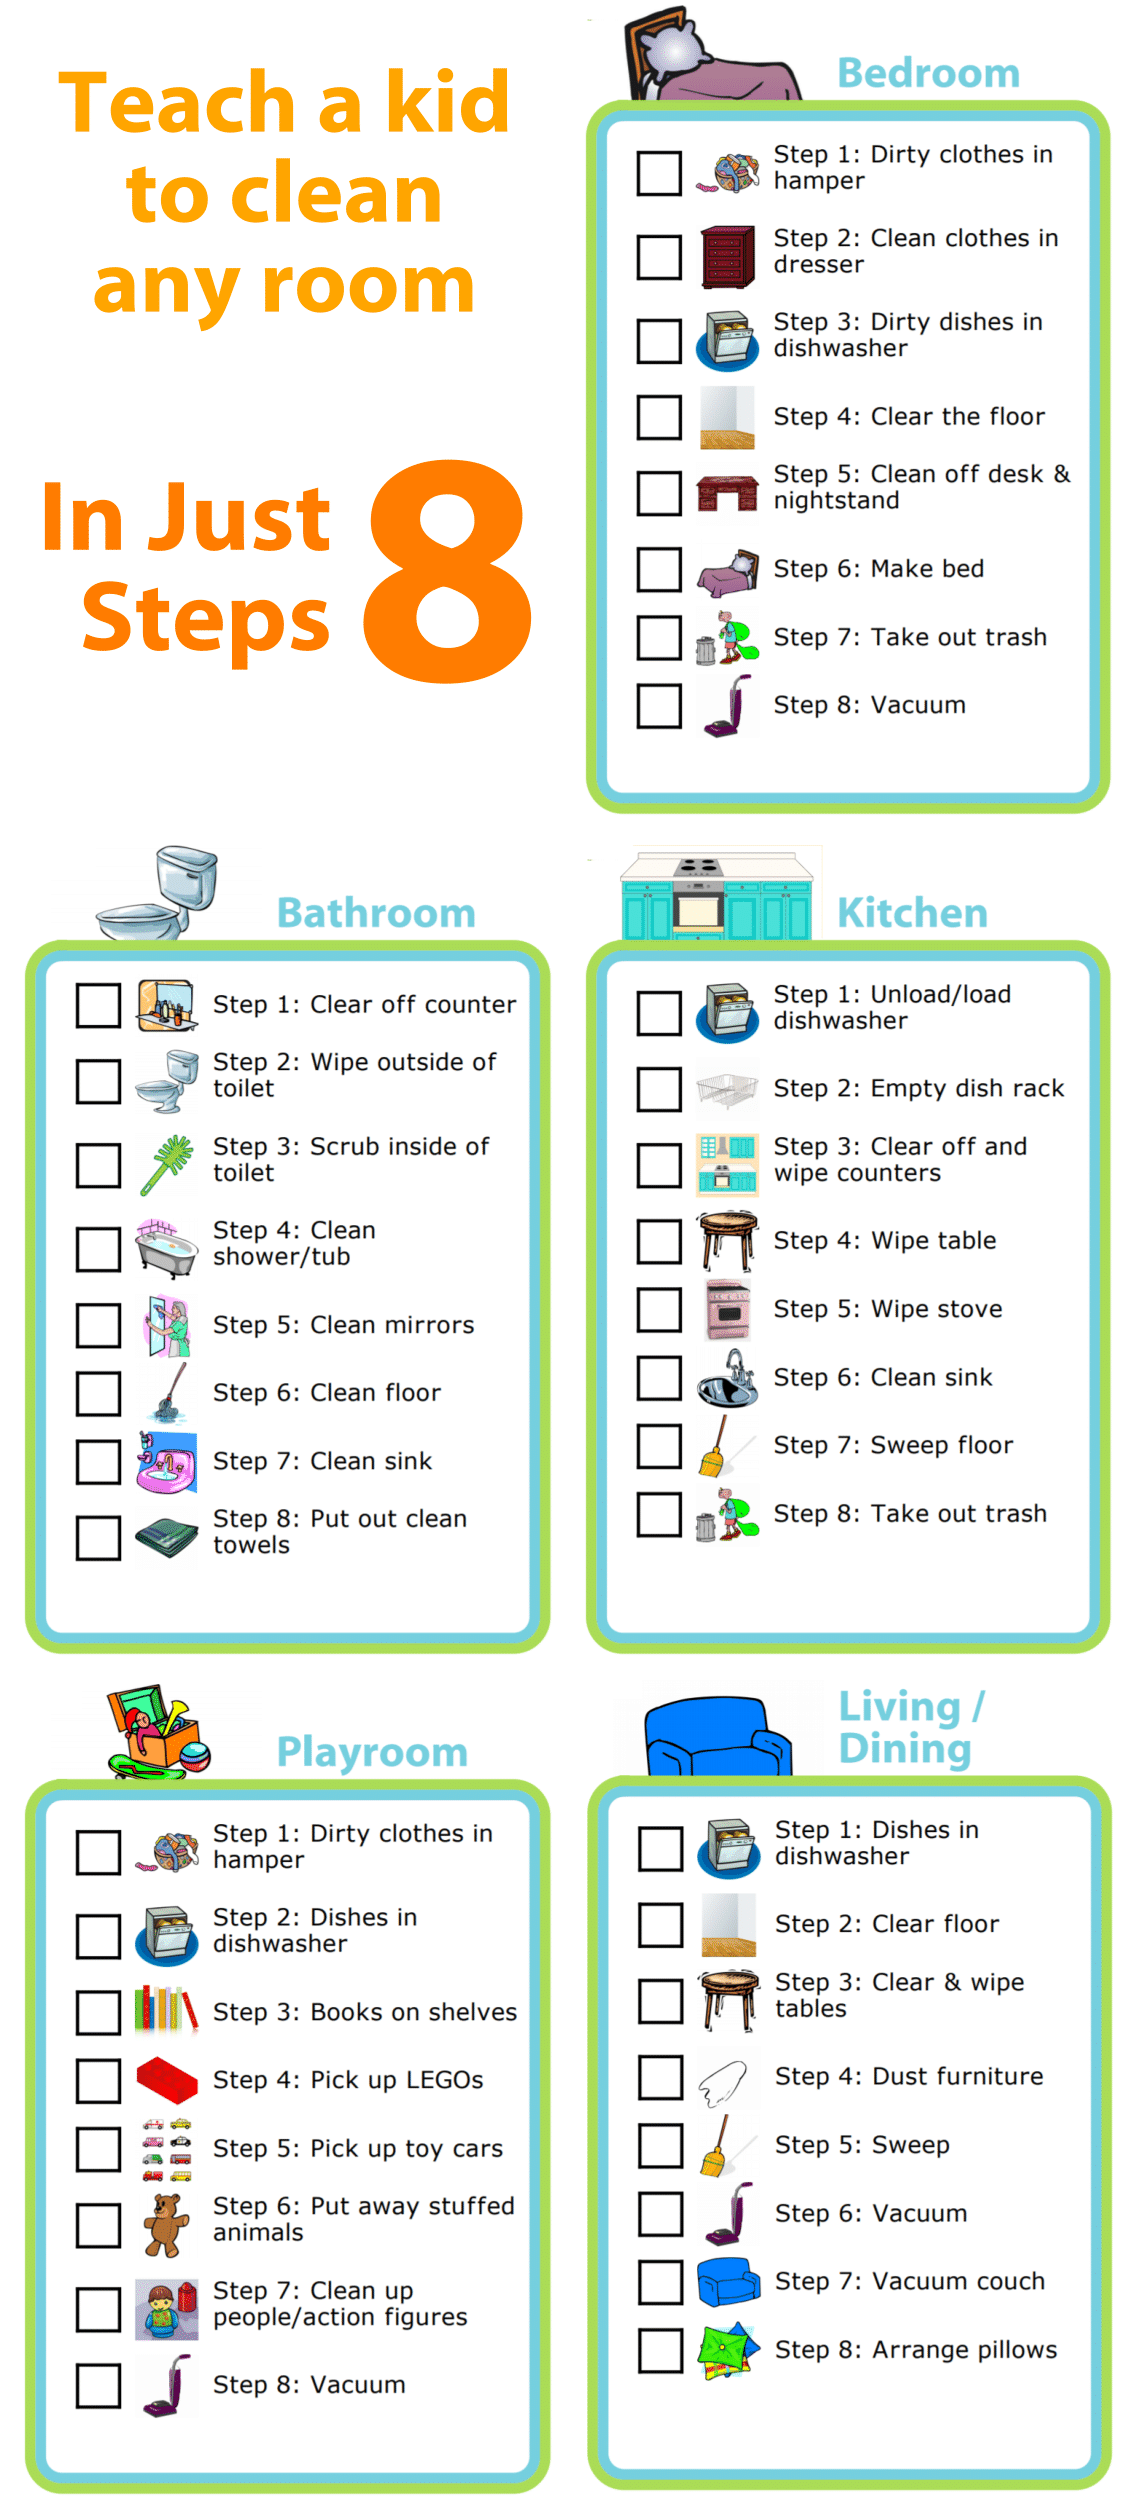 Free Printable Room Cleaning Checklists